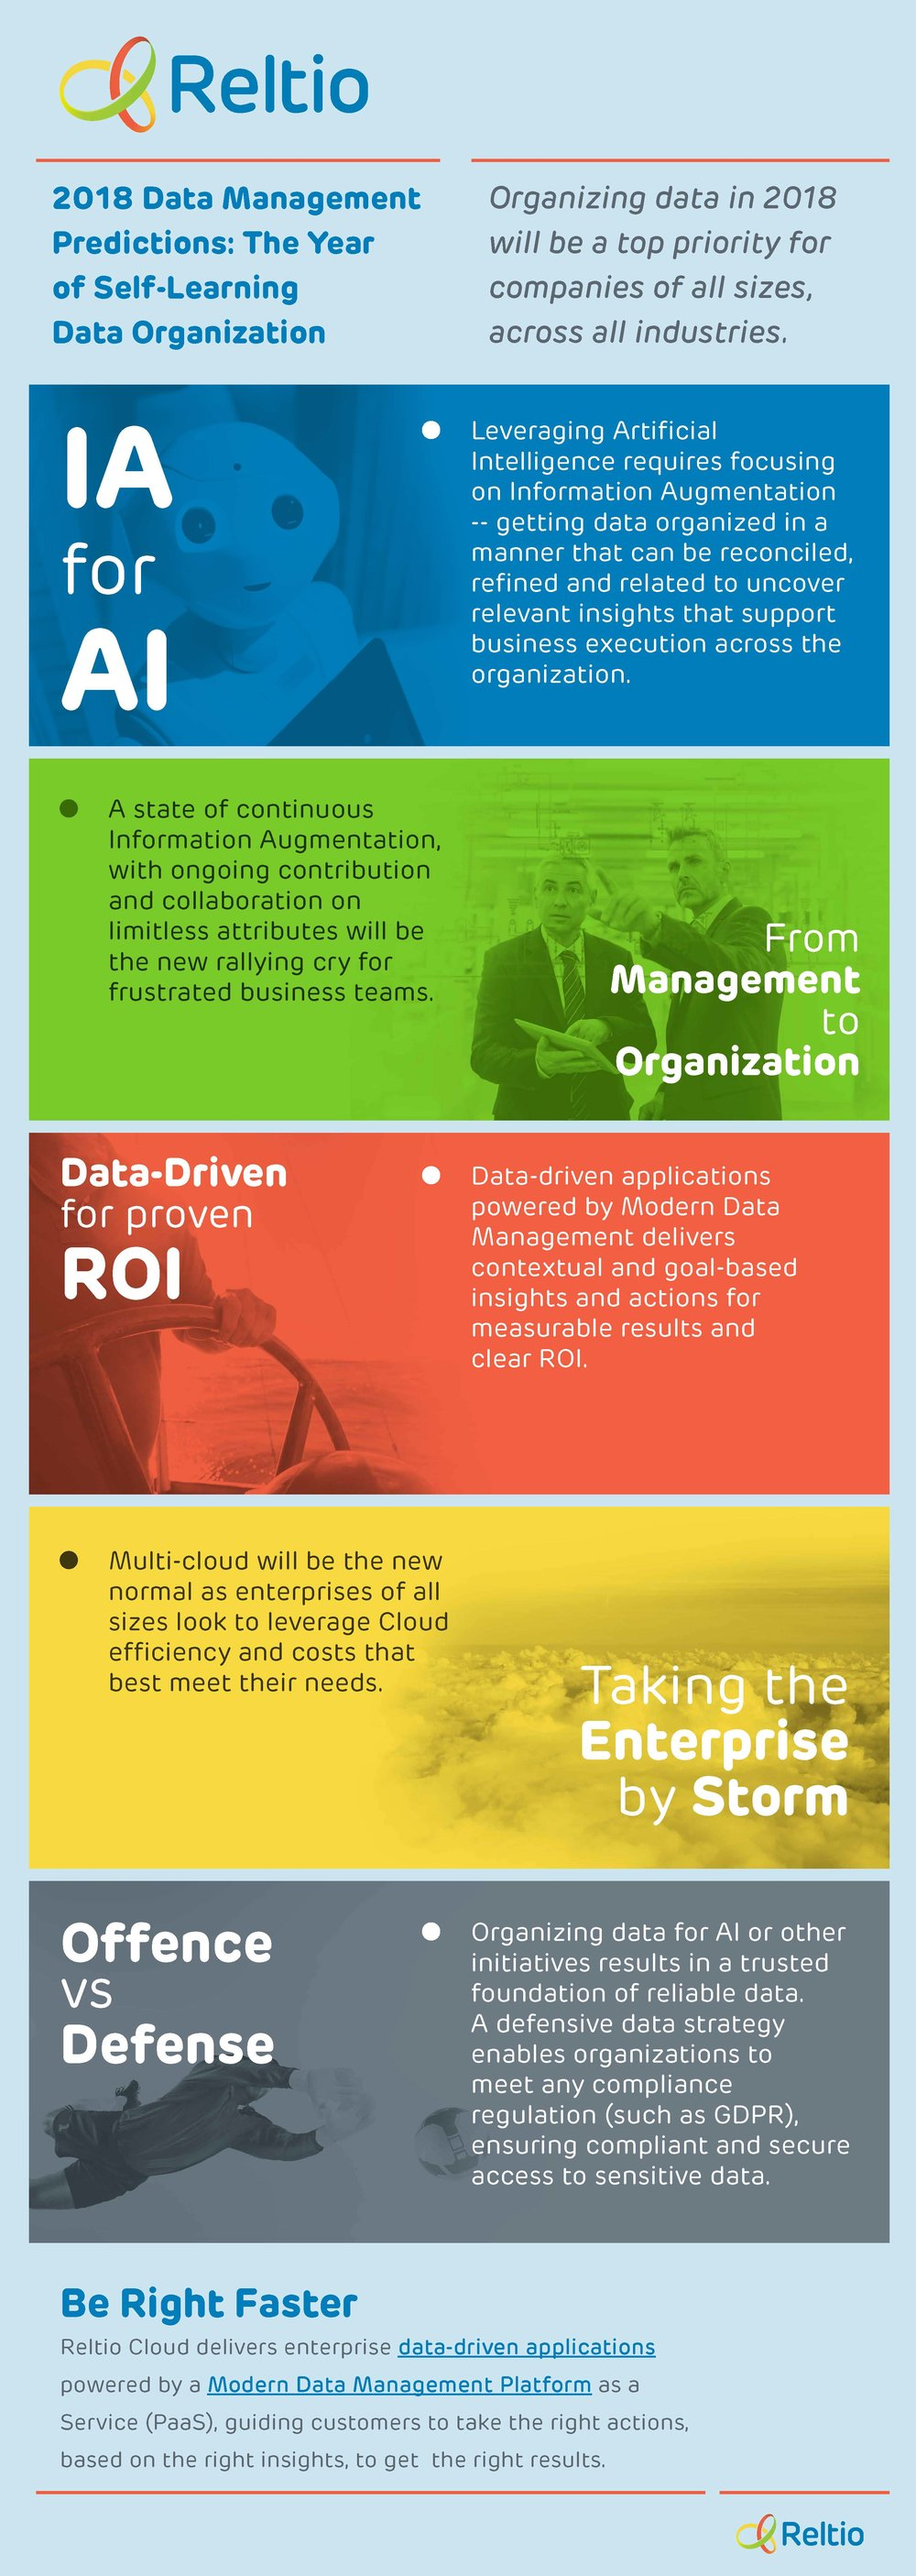 _Reltio_Data_Management_Predictions_2018_Infographic .jpg